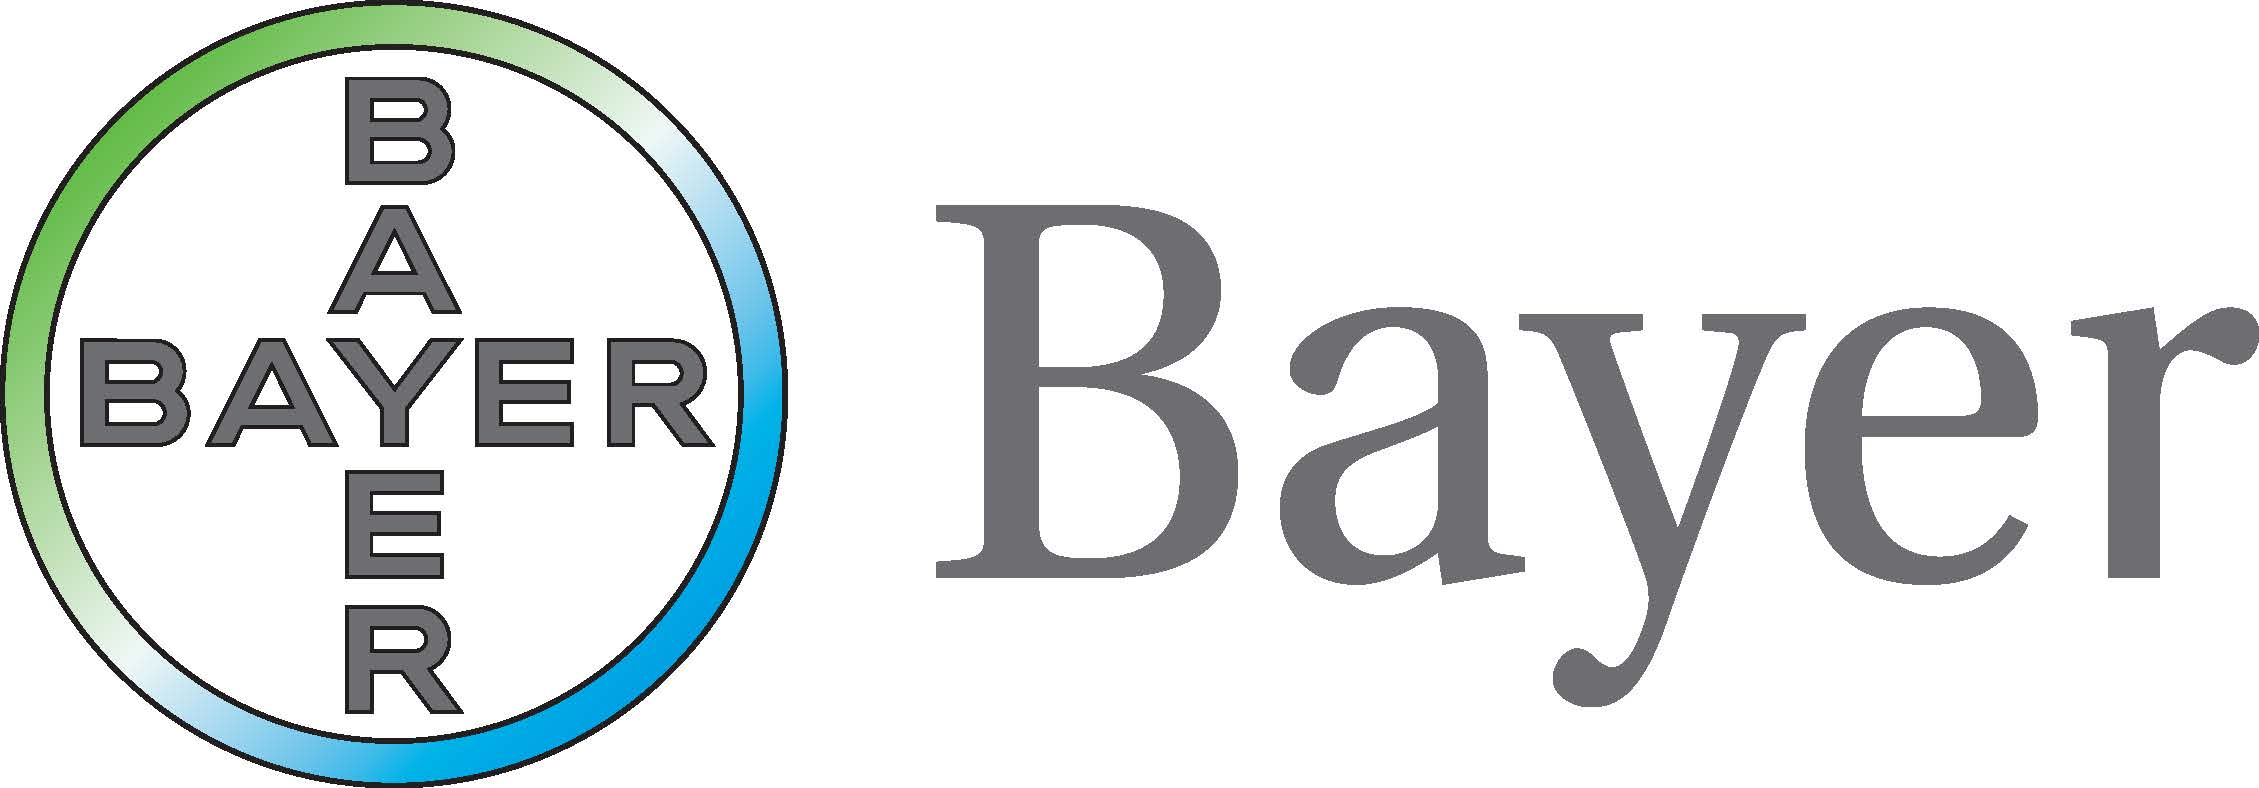 Bayer CropScience logo